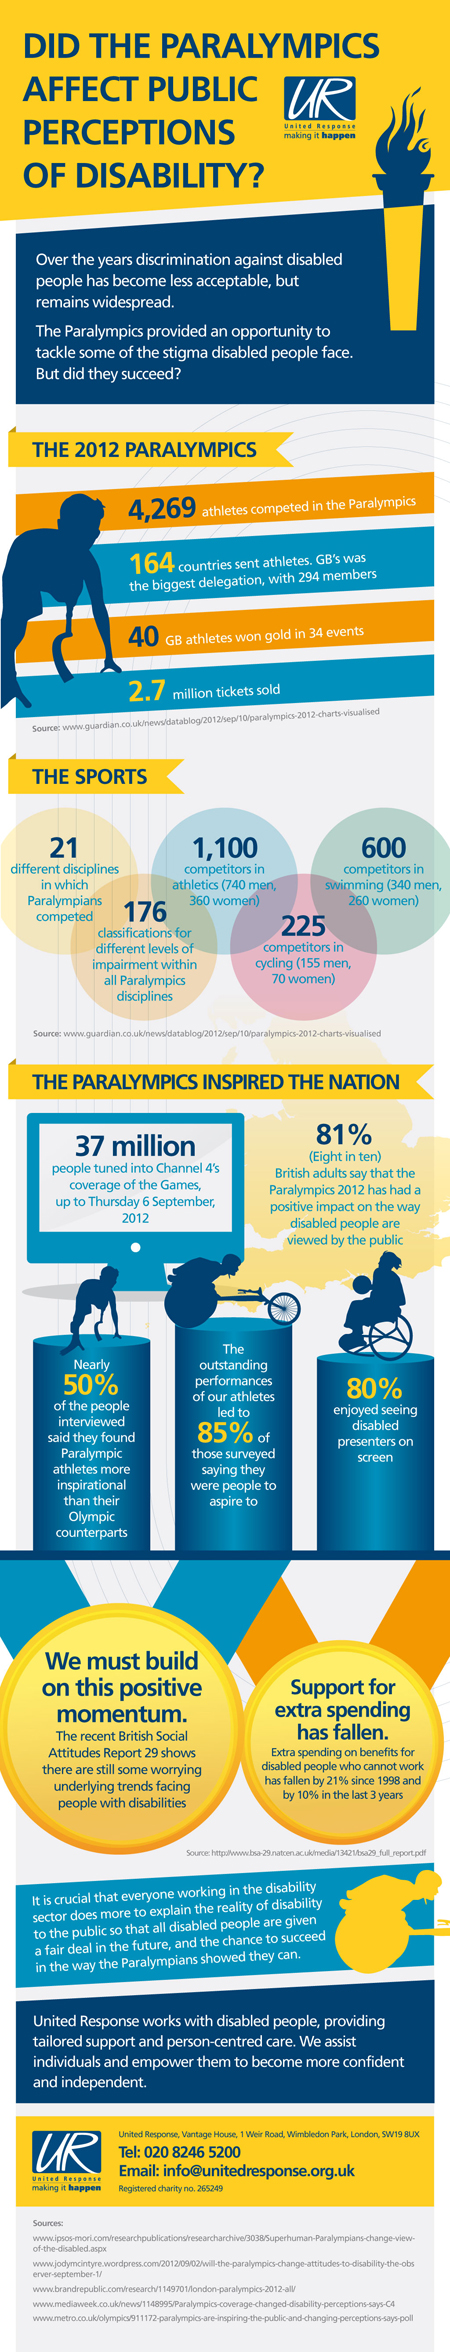 Did the Paralympics affect public perceptions of disability? [Infographic]